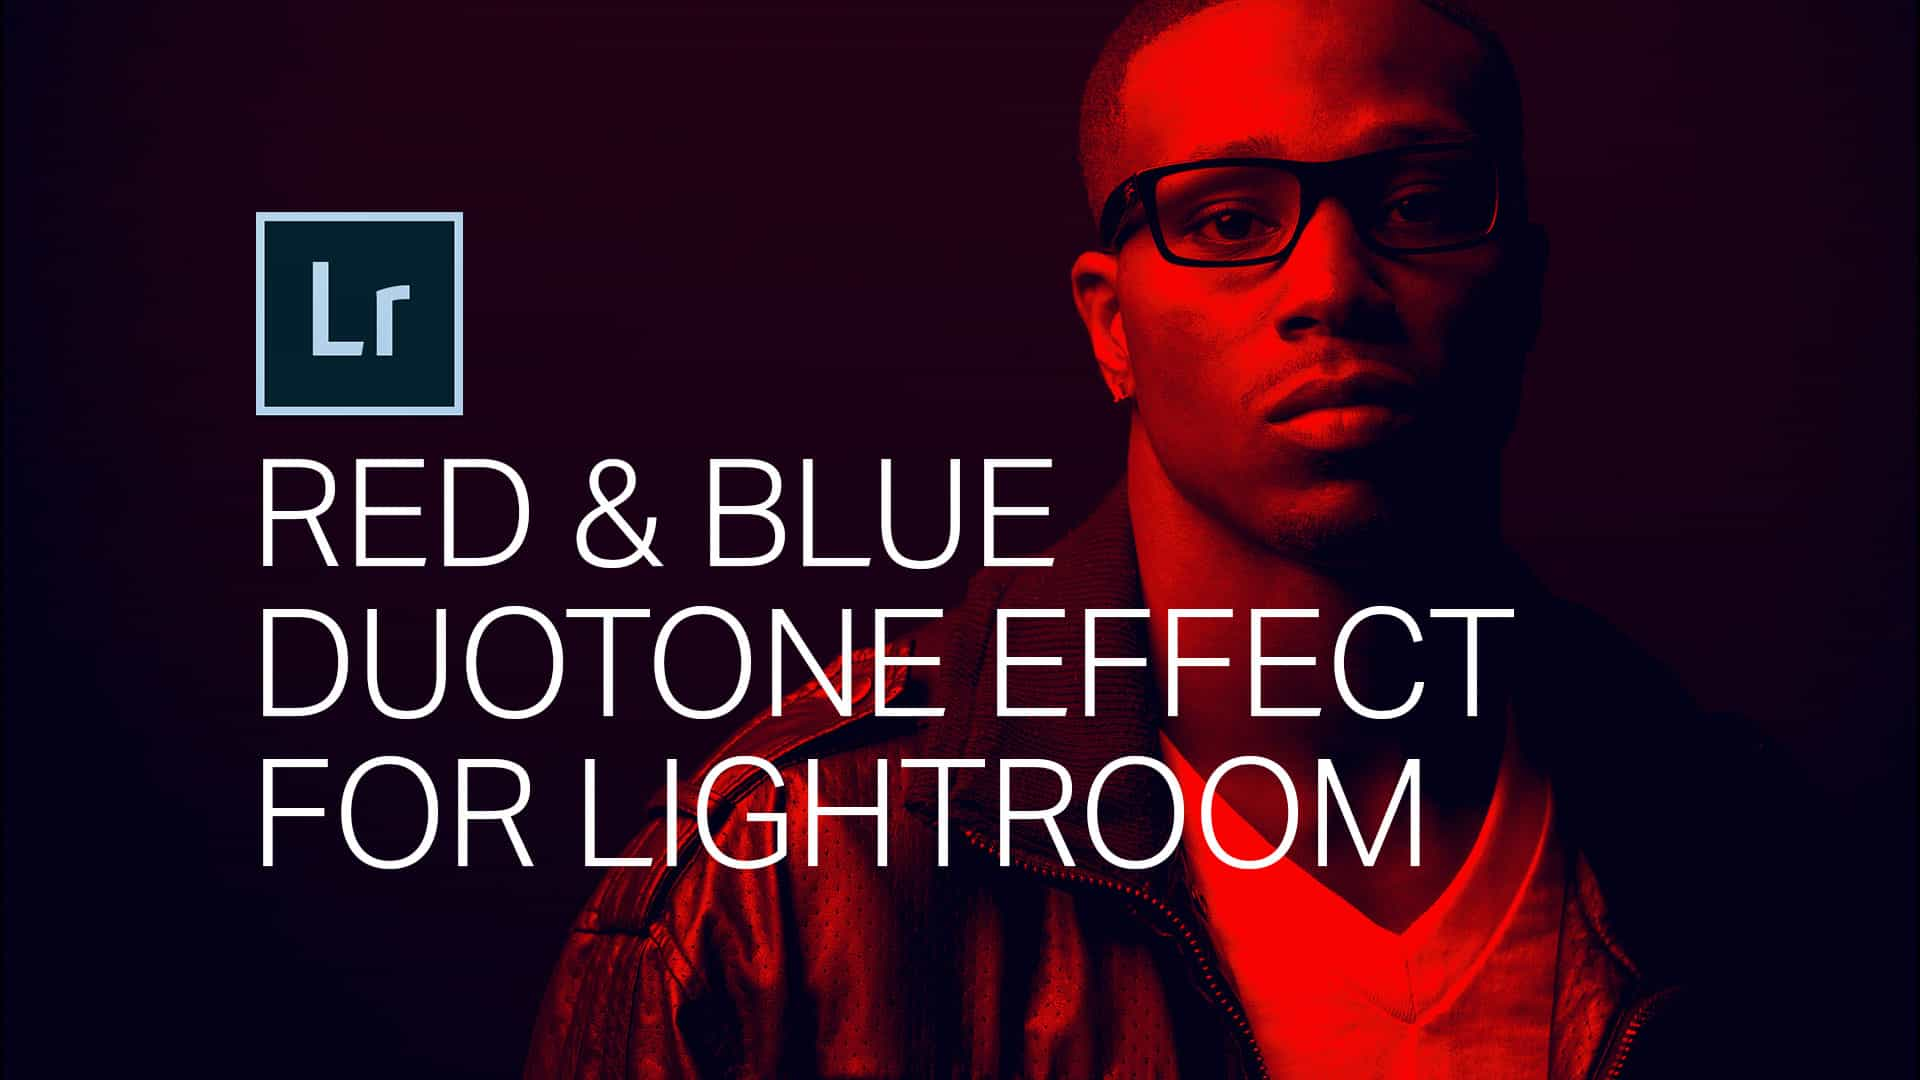 How to Get the Red and Blue Duotone Look in Lightroom